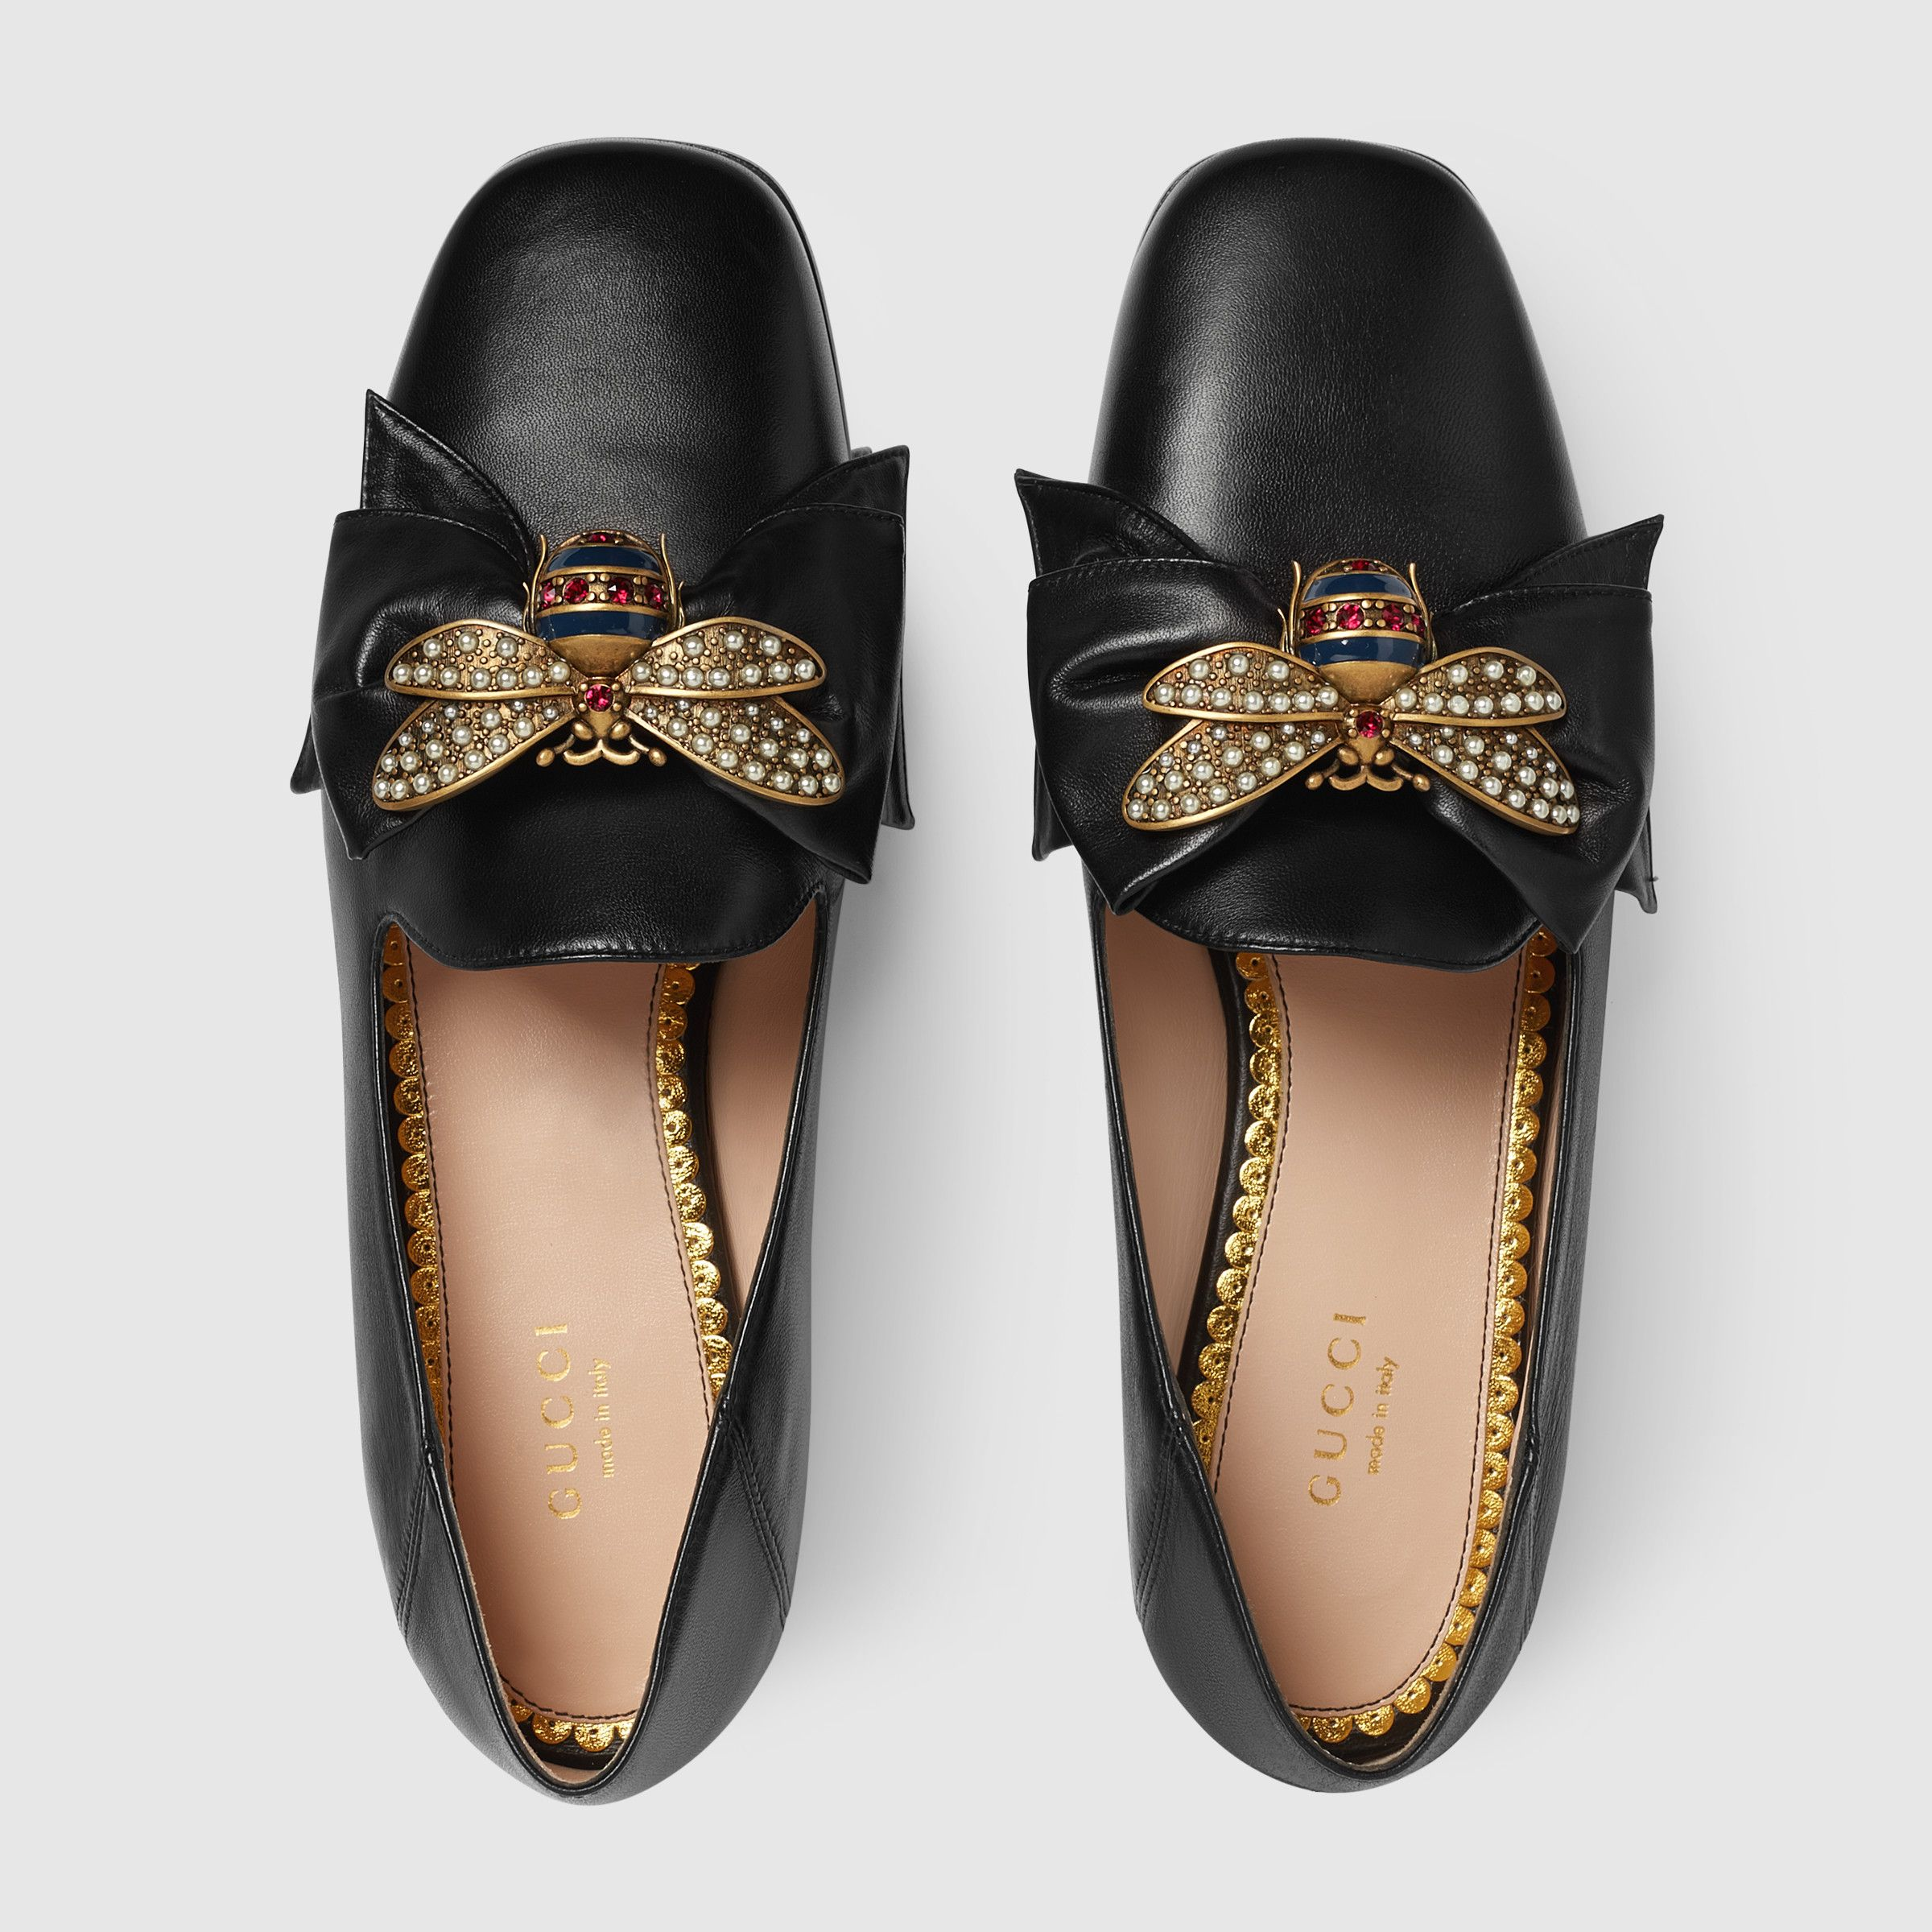 63ca83399 Leather ballet flat with bow - Gucci Women s Moccasins   Loafers  505291BKO001000